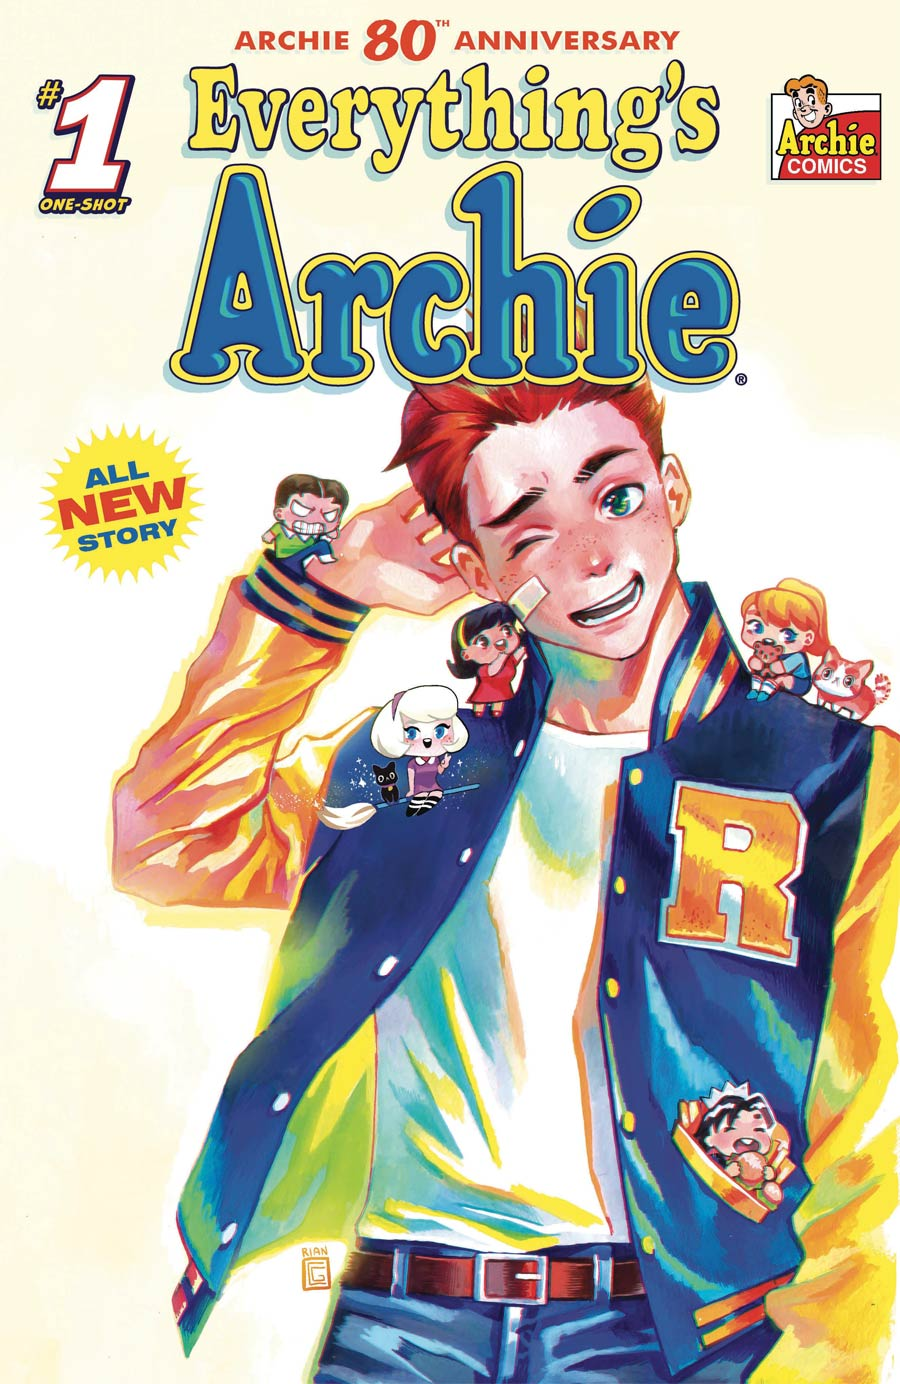 Archie 80th Anniversary #1 (One Shot) Everythings Archie Cover C Variant Rian Gonzales Cover